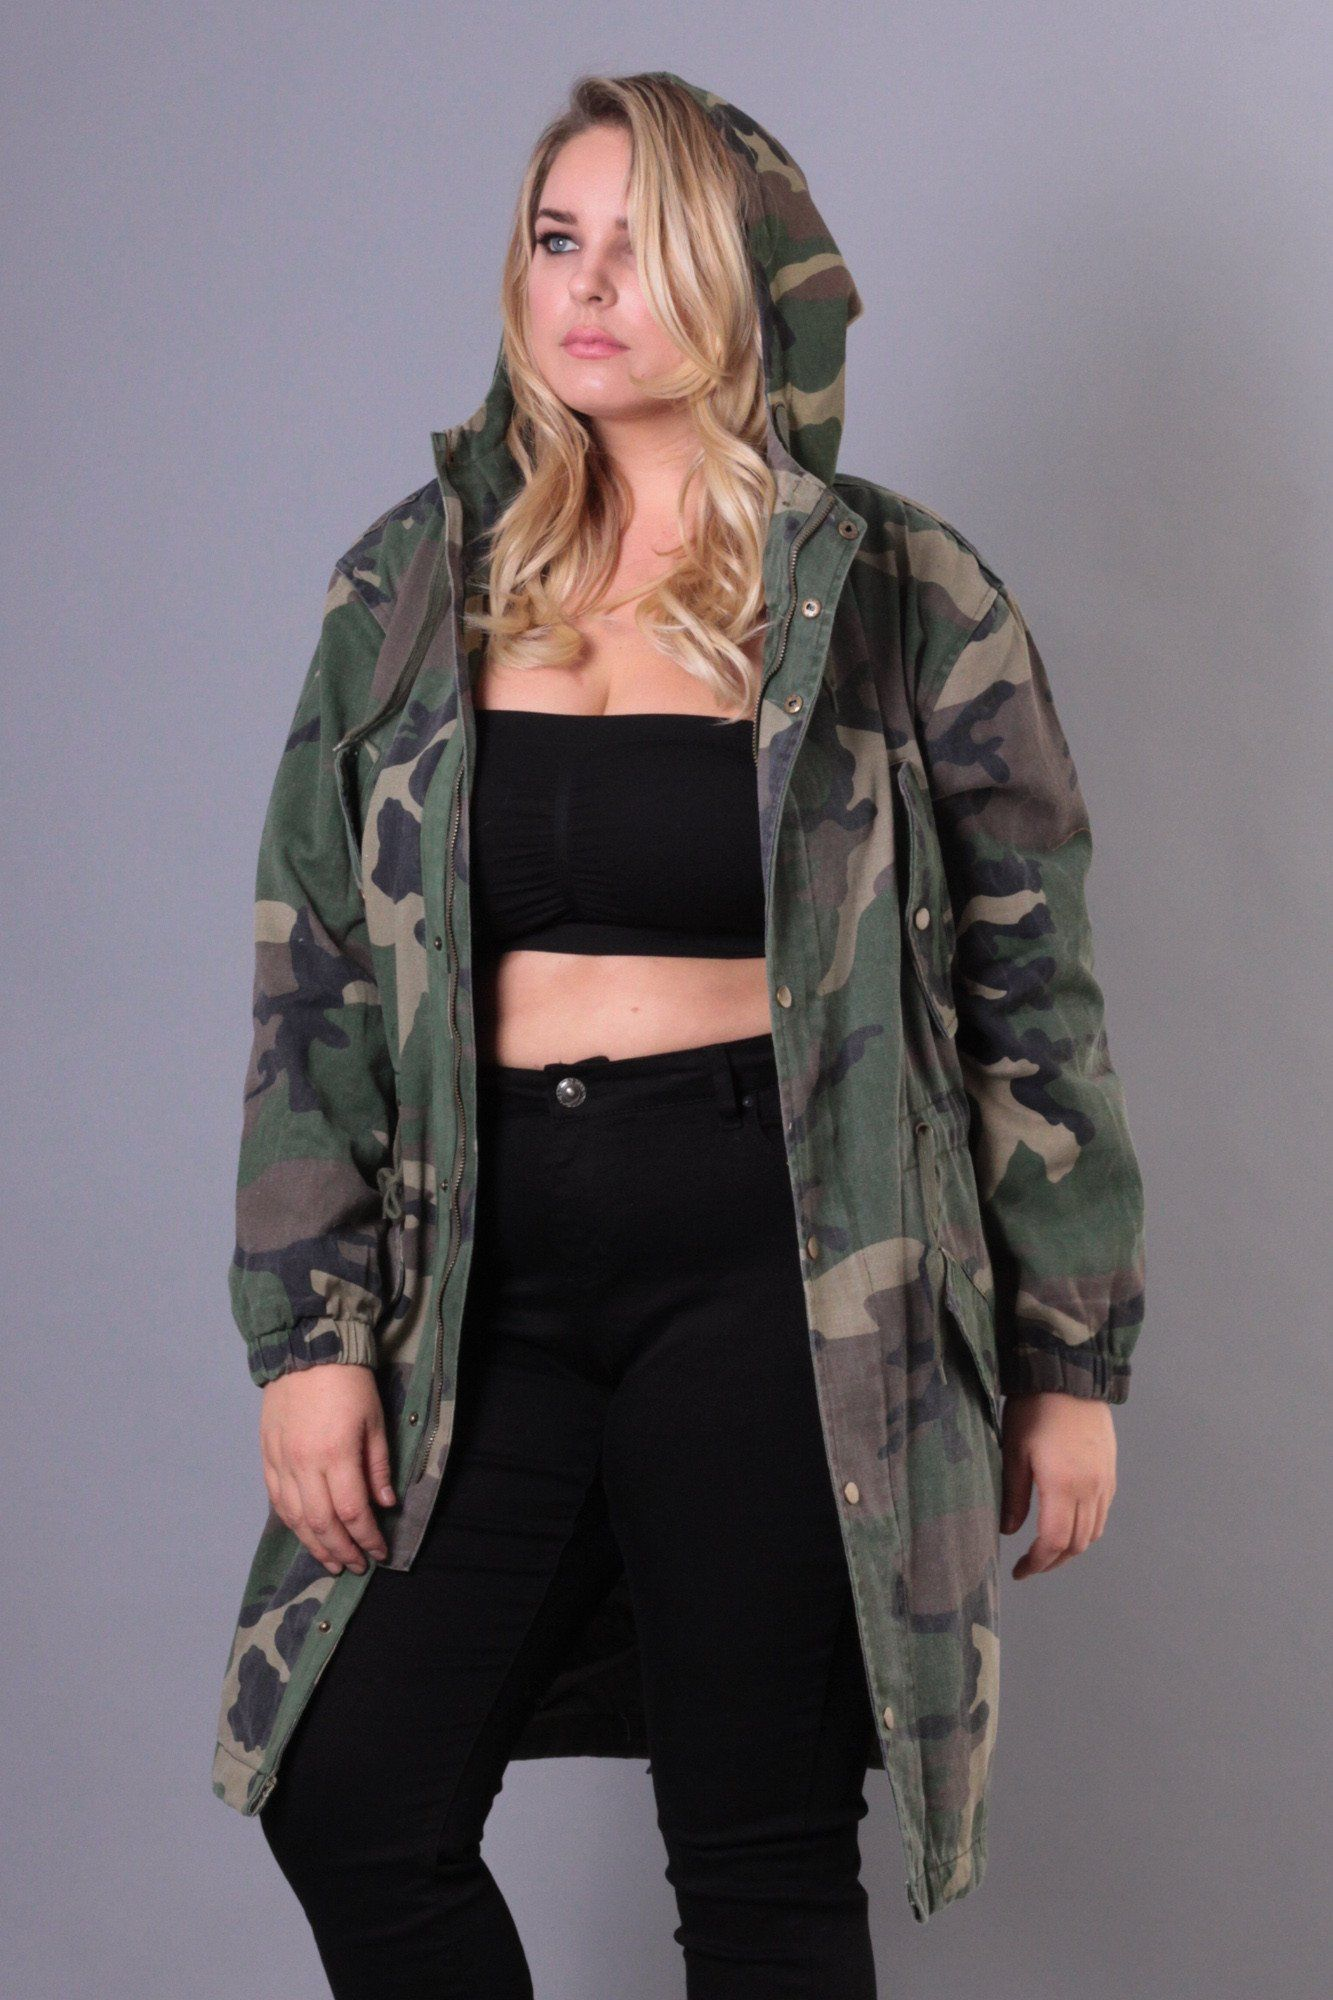 b5459738781 Jackets And Outerwear - Plus Size Hooded Camo Utility Coat - Olive ...